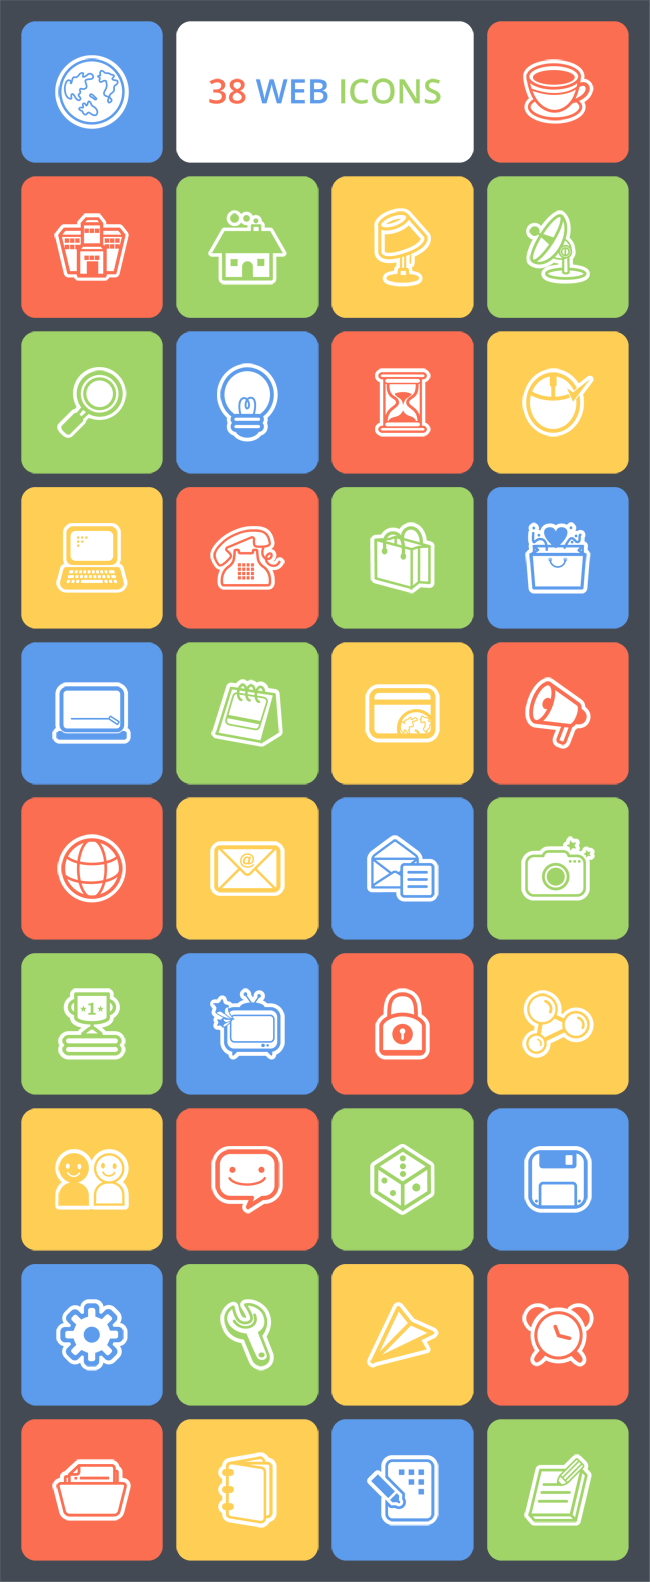 Free Web Icon Set